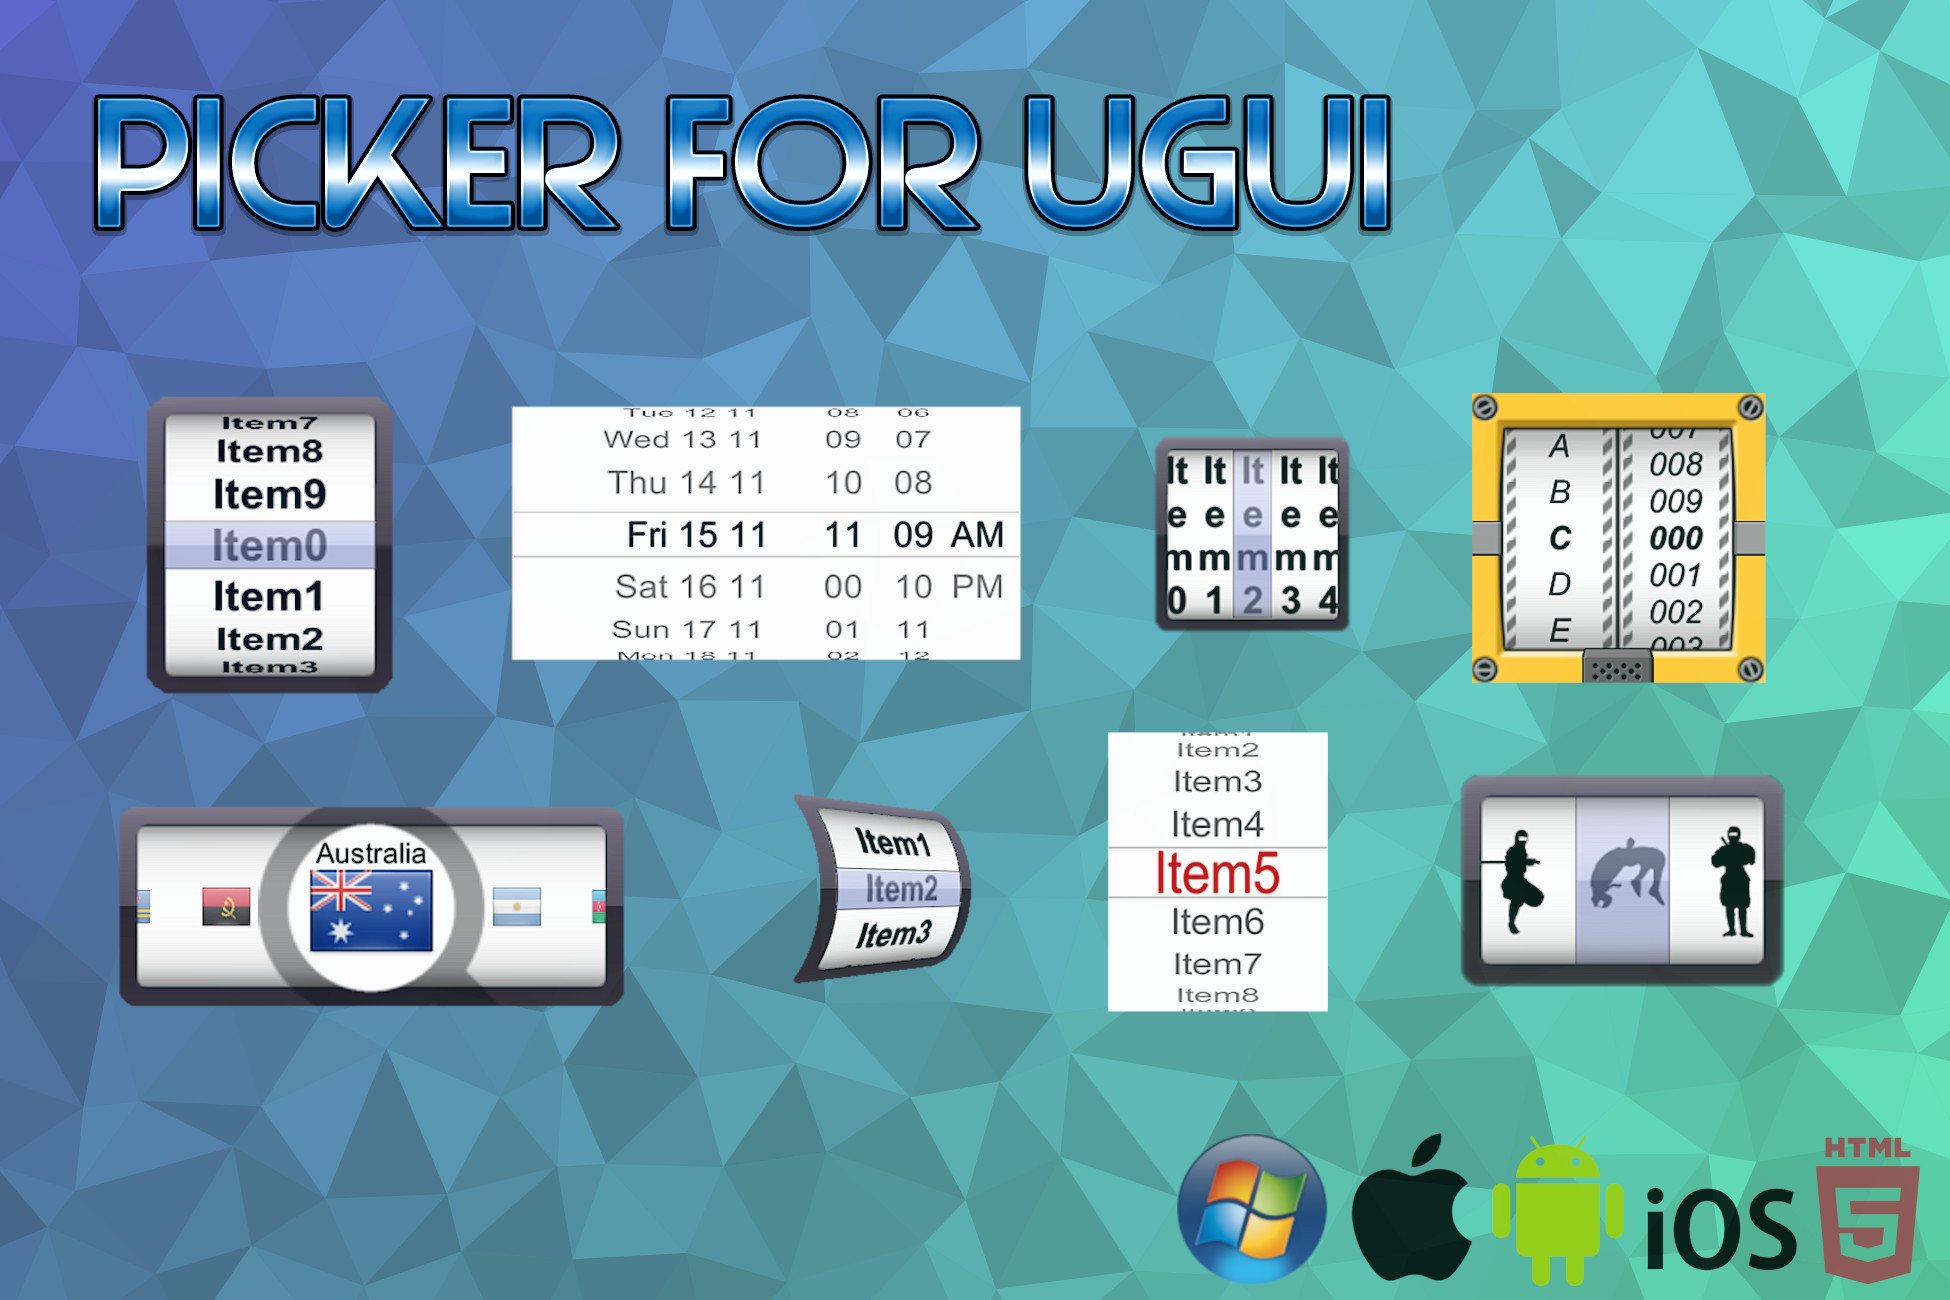 Picker for uGUI